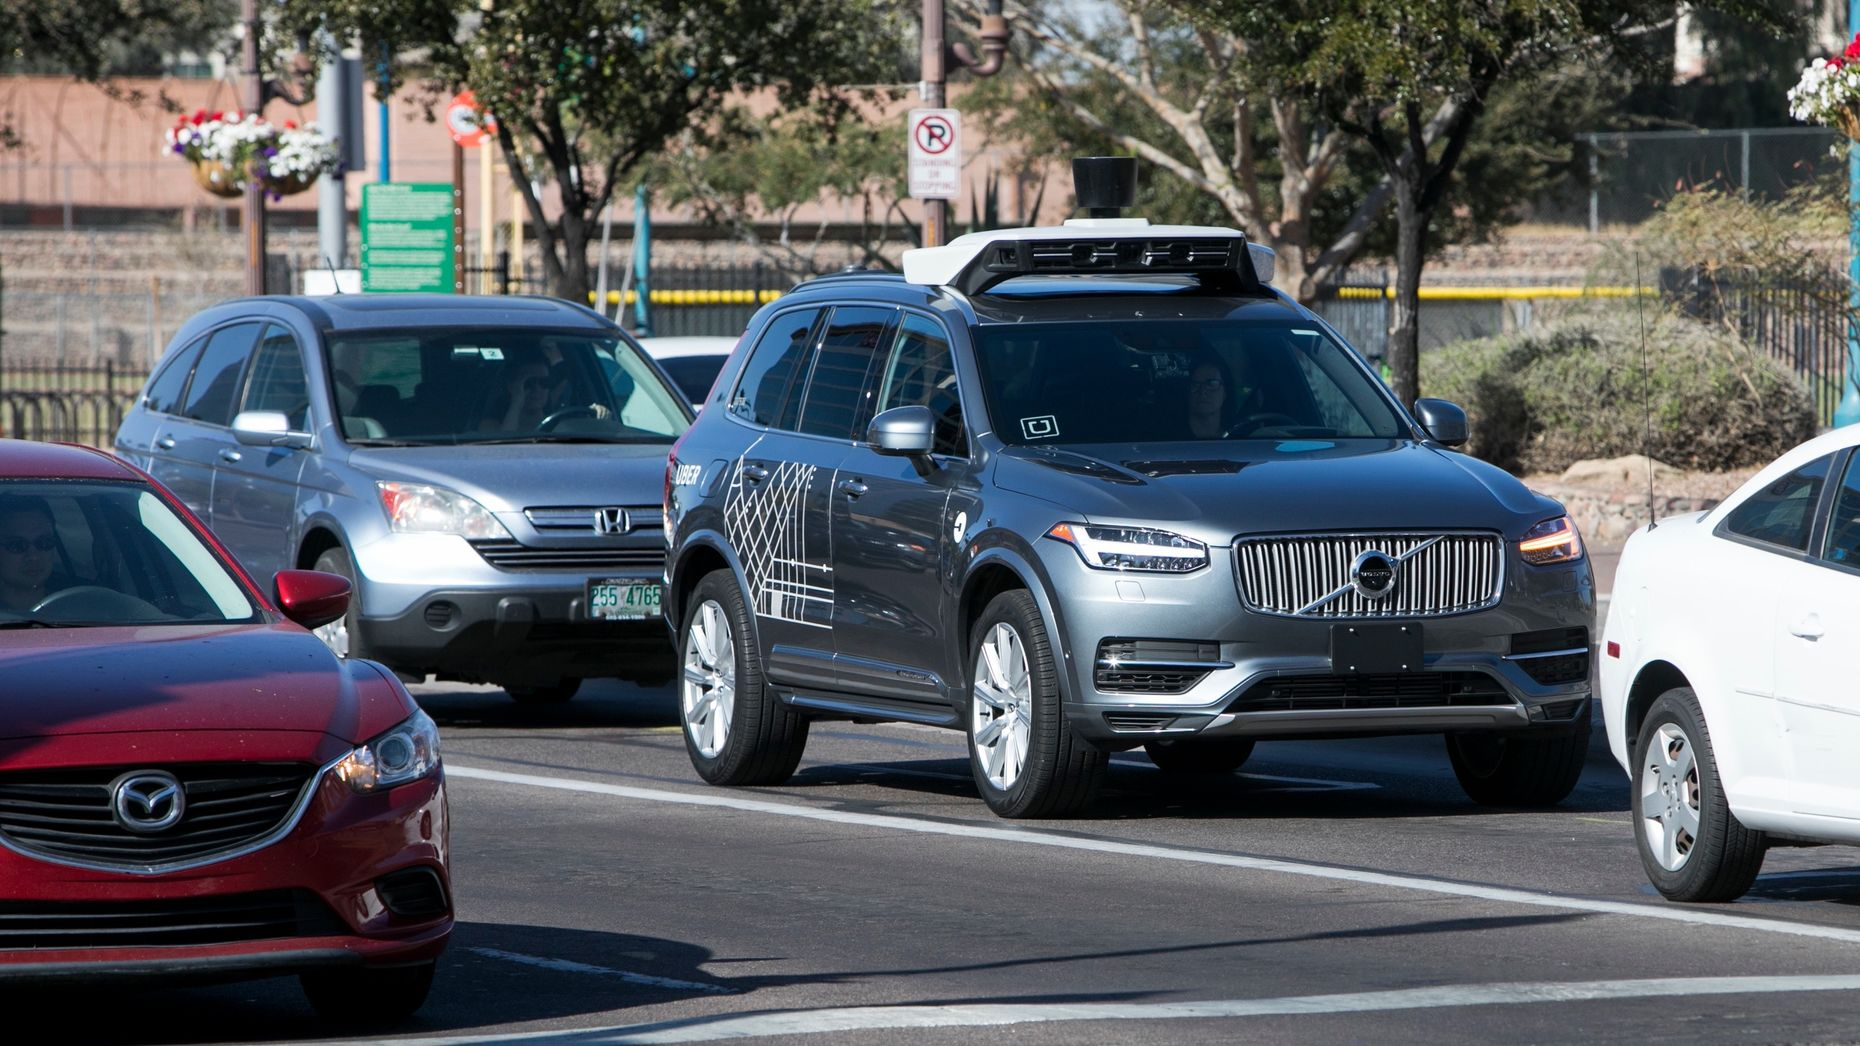 An Uber self-driving car being tested earlier this year. Photo by AP